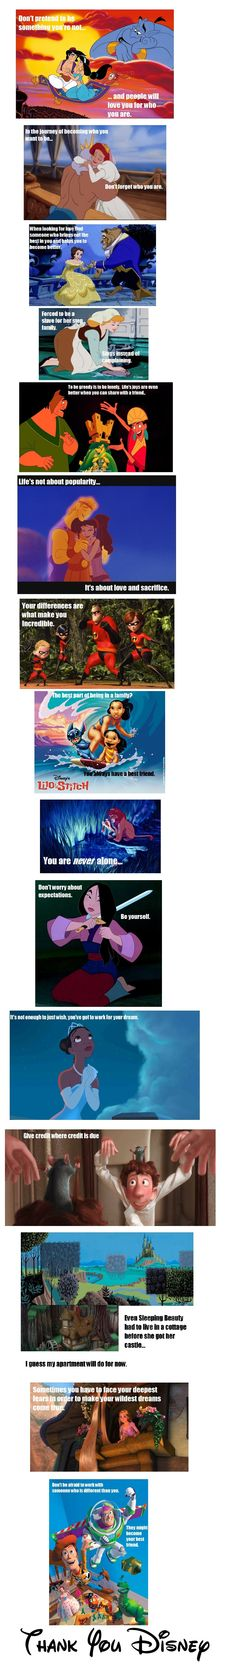 Disney lessons! Thank you Disney for all these years of happiness <3